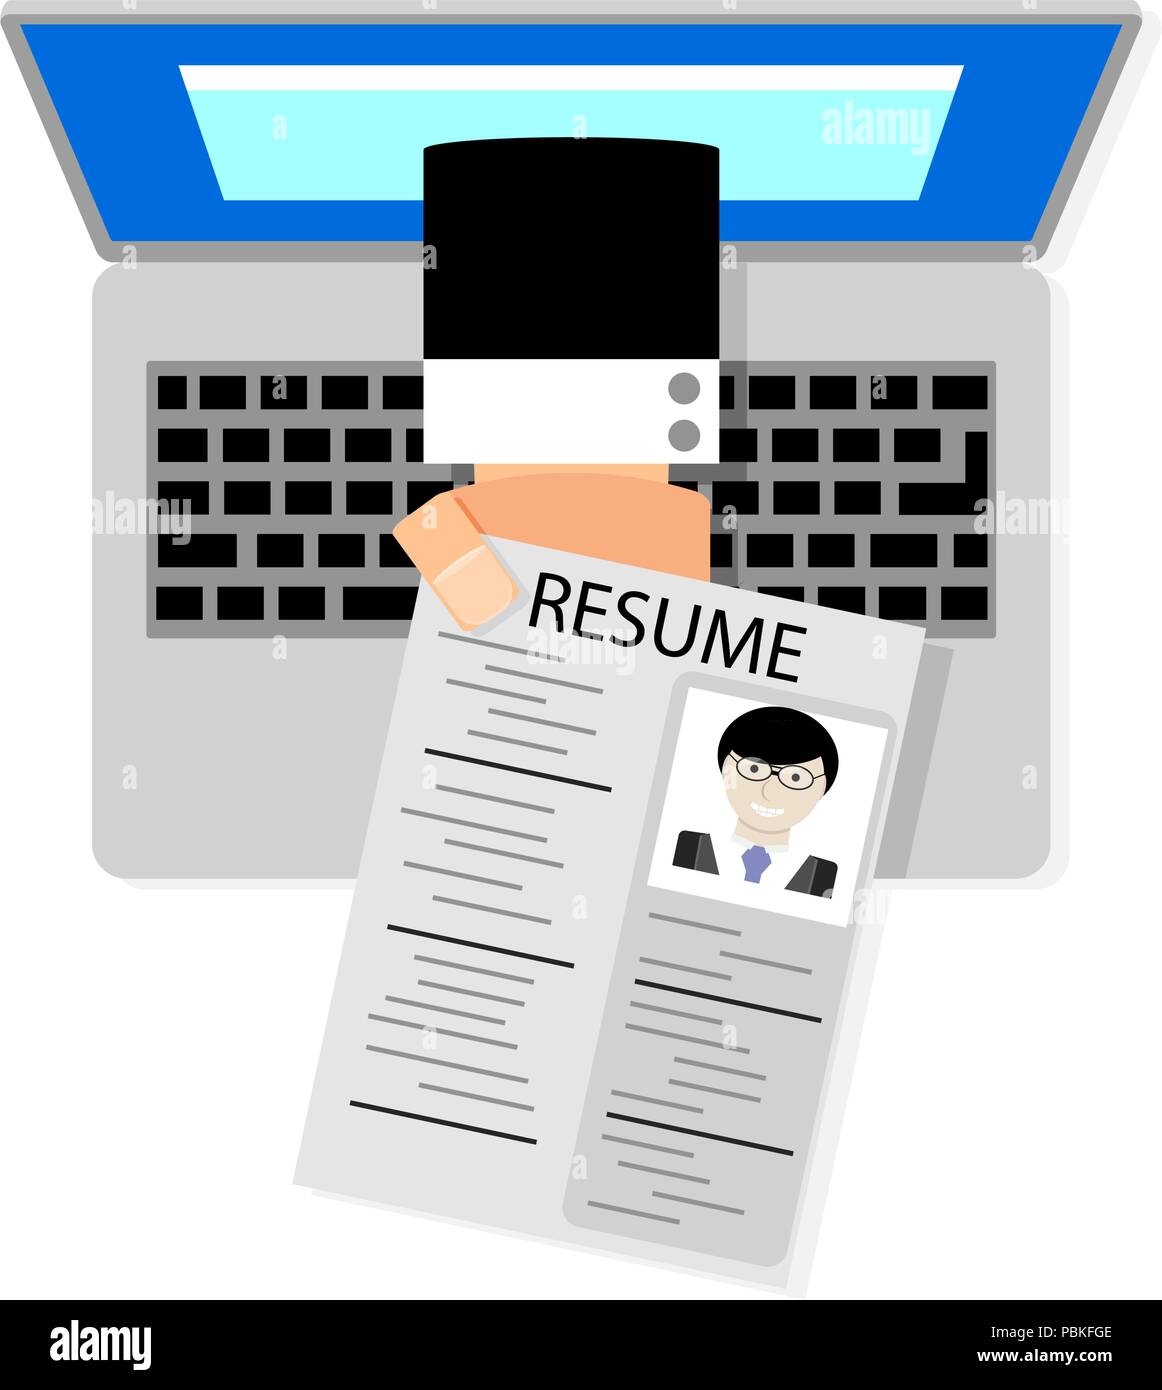 job search online hand holding cv resume from screen laptop vector illustration job hunting and find a job hiring and recruiting